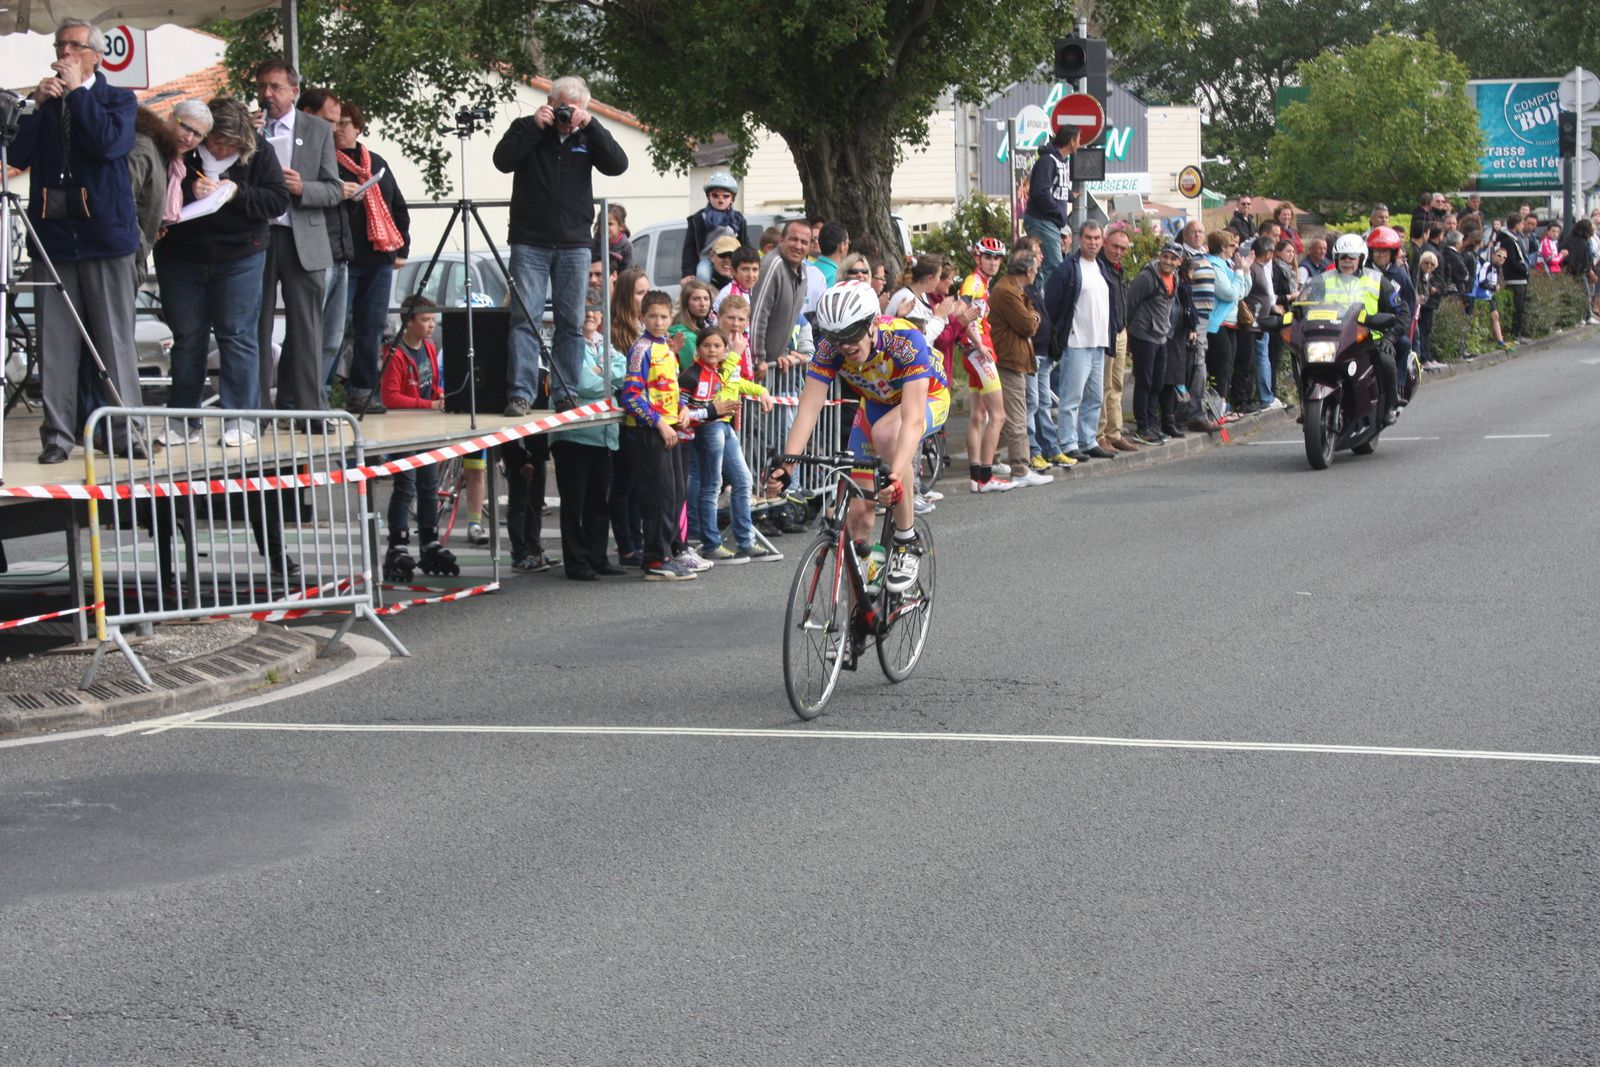 Victoire  pour  Fabien  DUFOSSE(VC  Saulceen  Elbeuf), 2e  William  HUGUET(VC  Thouars), 3e  Cyril  JOURDAIN(VC  chantonnay), 4e  Christian  MONIER(C  Poitevin), 5e Jonas  DUPUIS(VCCO), 7e  Rémi  EPRINCHARD(CC  Nanteuil), 9e  Louis  BODIN-AMIEL(UVA), 10e  Flavien  SMERALDI(VC  Saintes)